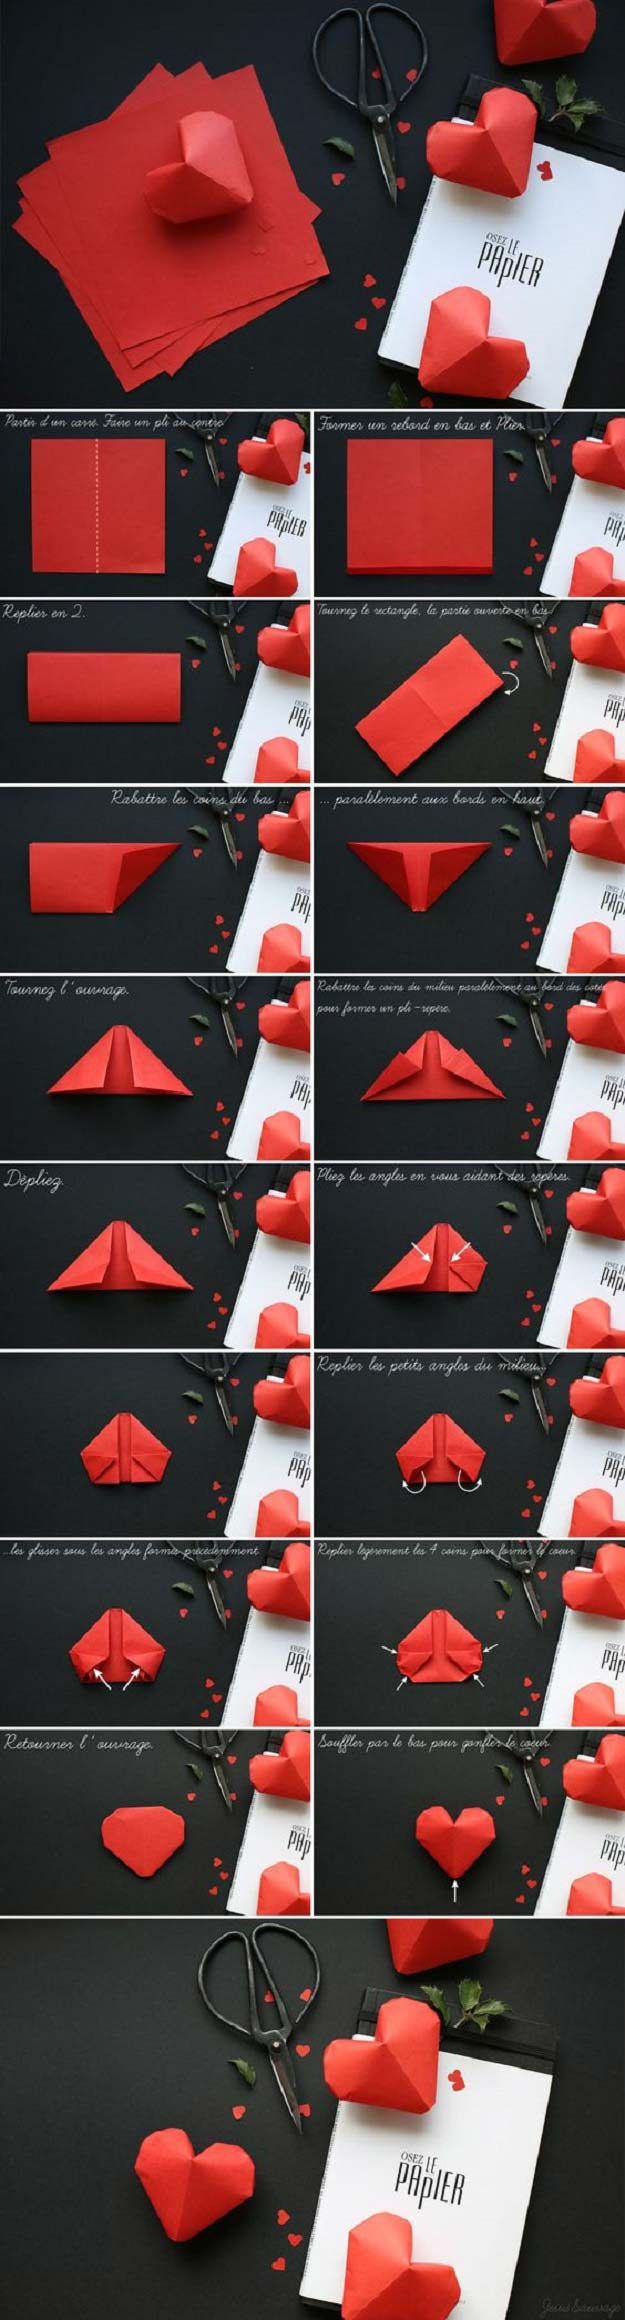 Step By Step Diy Origami Heart Box - All About Craft | 2320x625